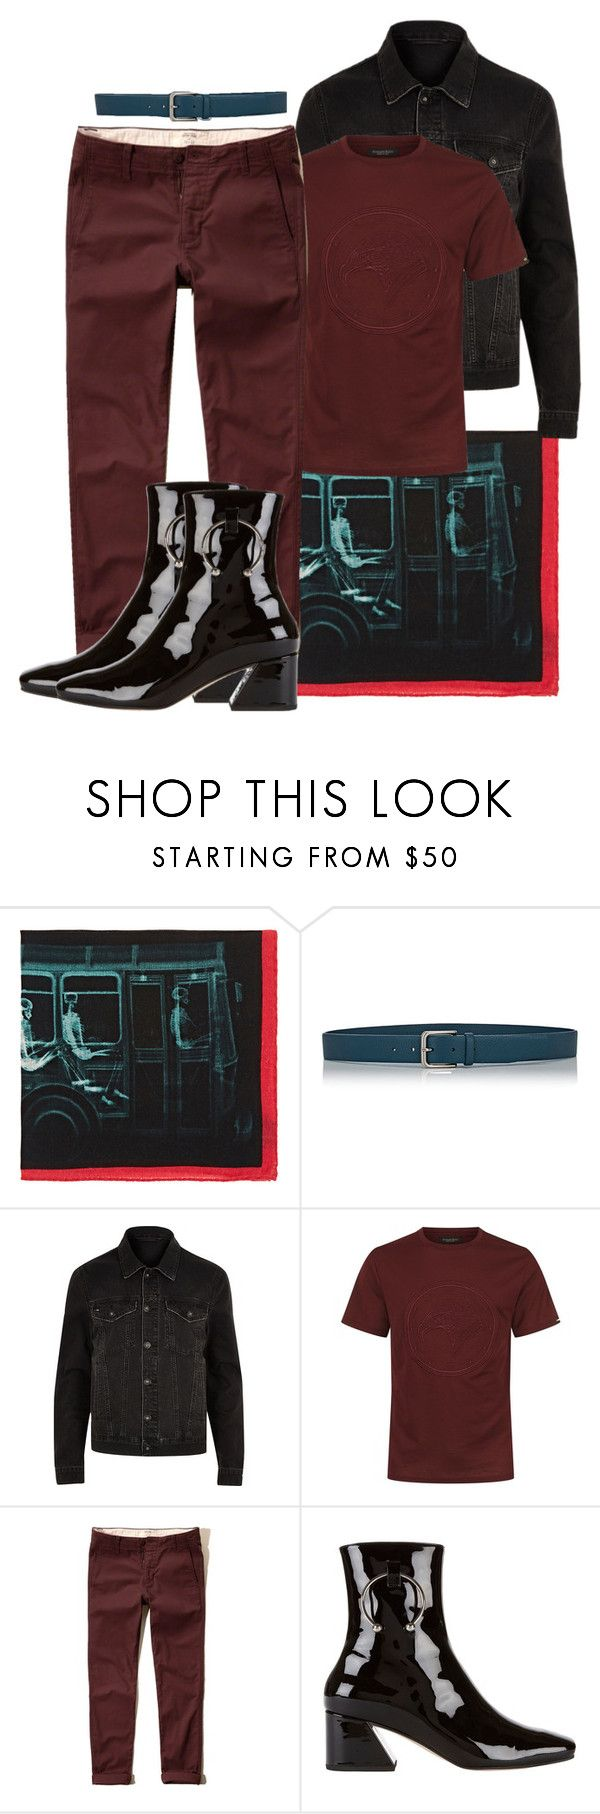 """// HEELS // MAN"" by consuelor ❤ liked on Polyvore featuring Barneys New York, River Island, Stefano Ricci, Hollister Co., Dorateymur, men's fashion and menswear"